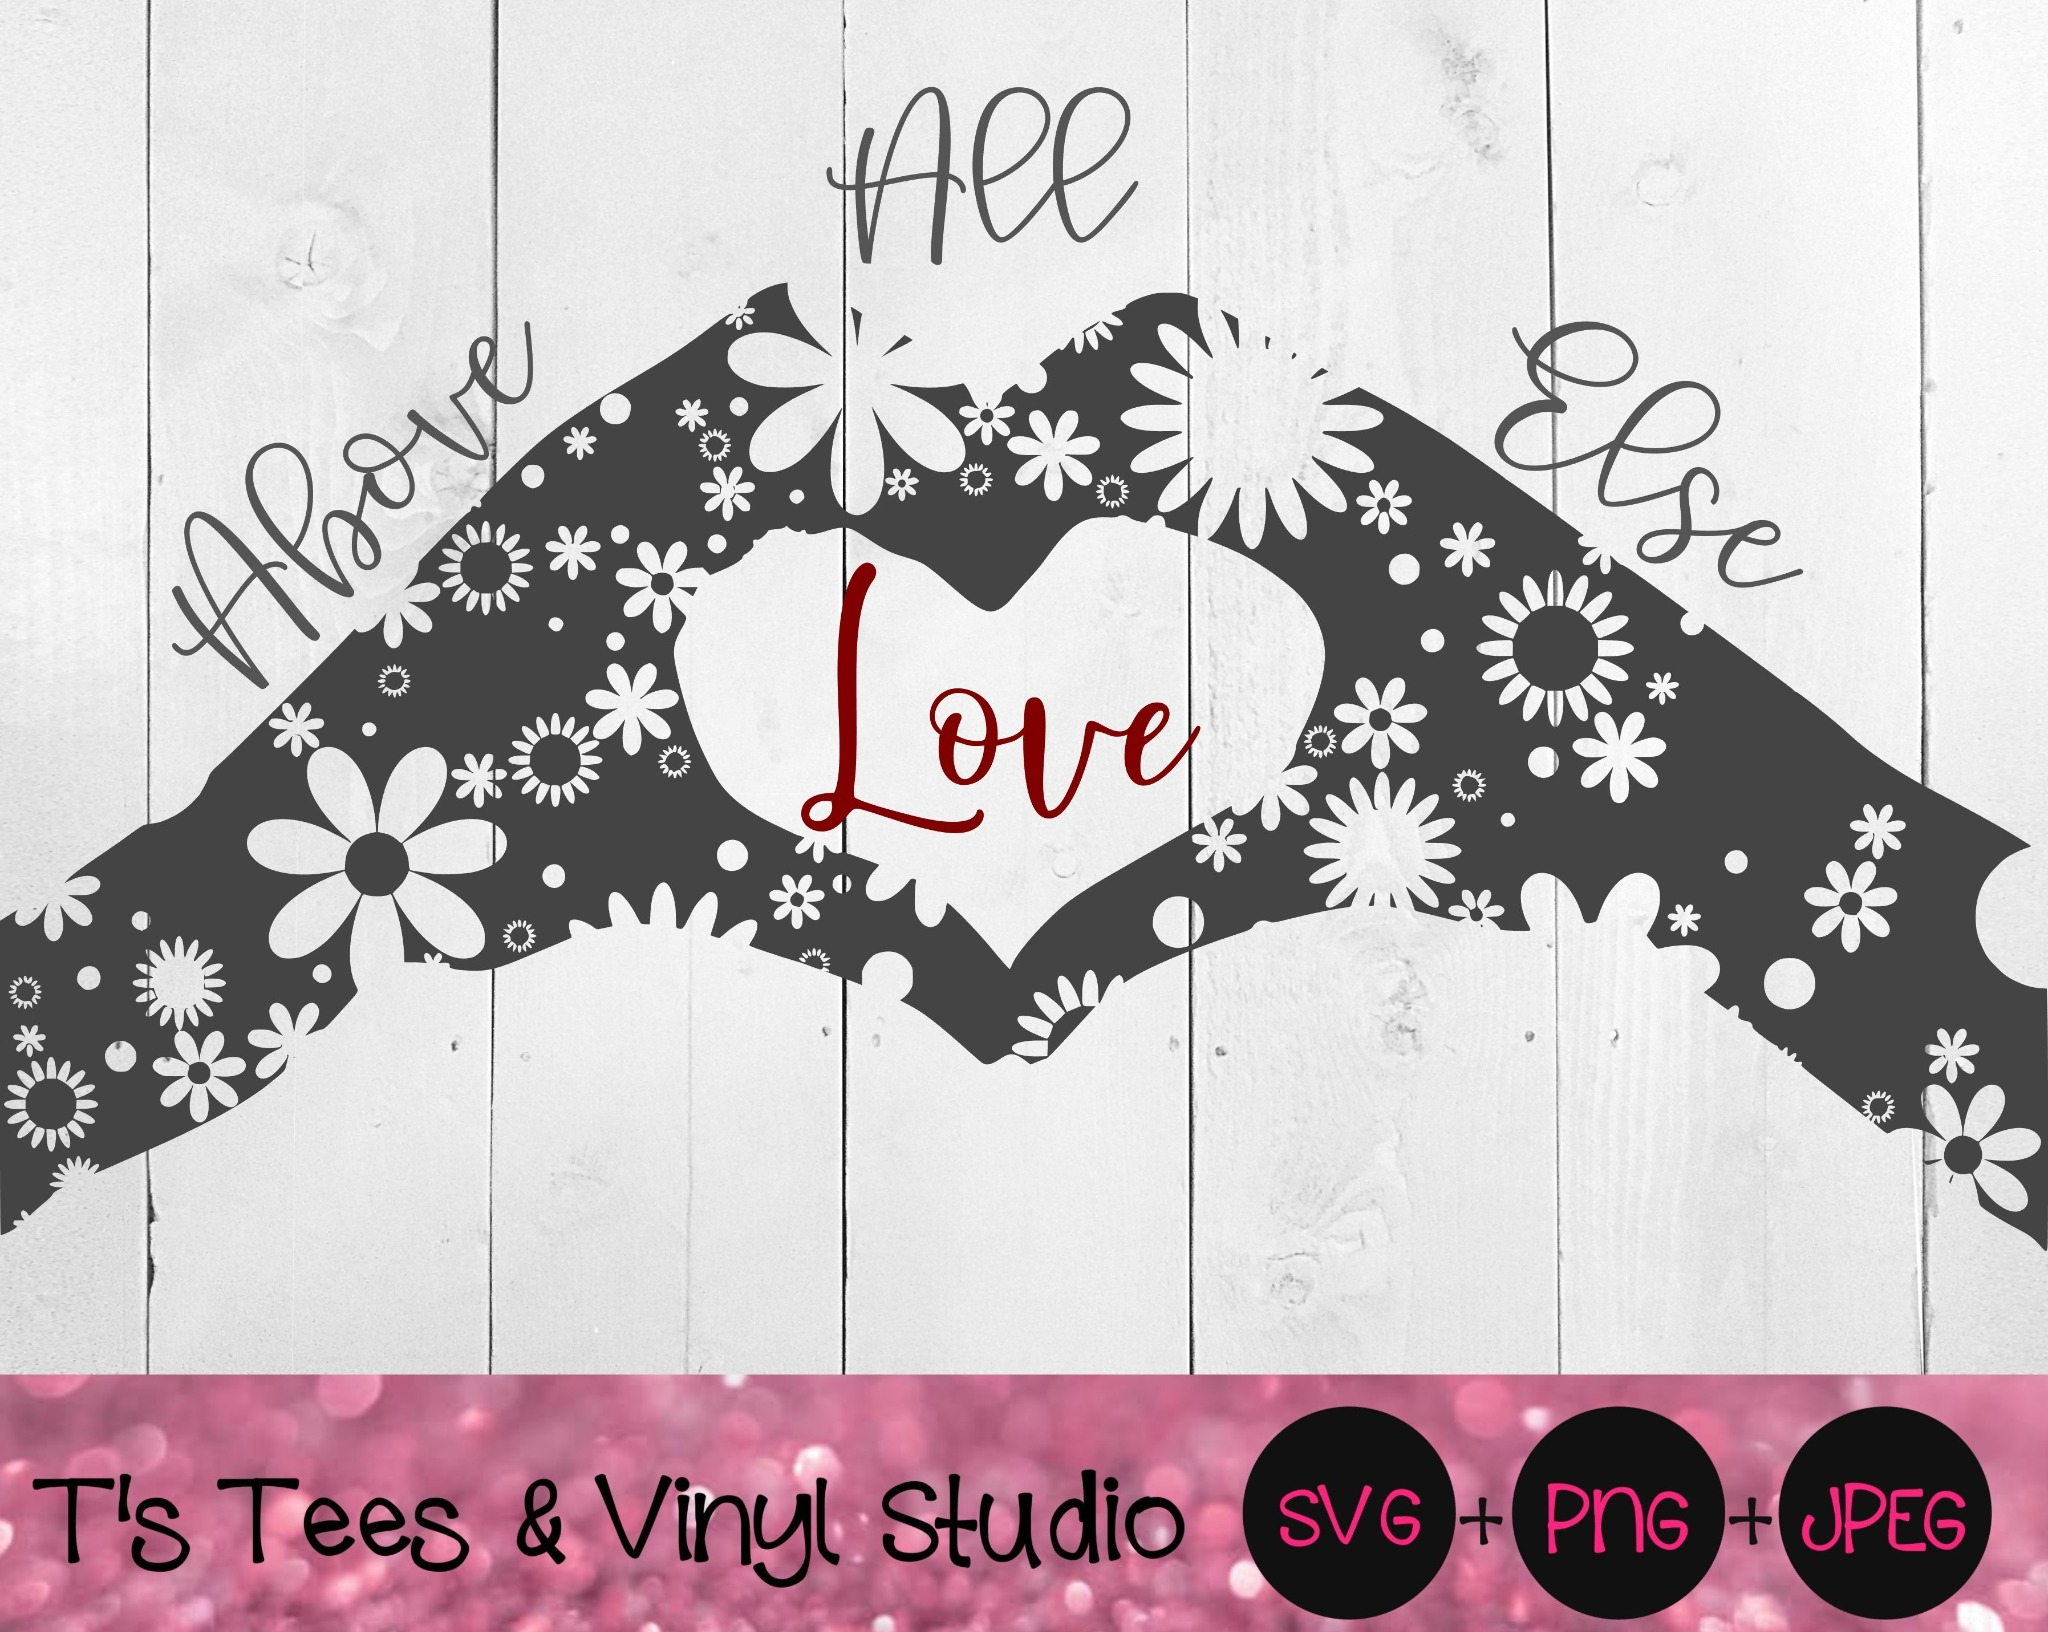 Above All Else Love SVG, Spread Love PNG, Love Not Hate JPEG, Digital Download, Cut File, Silhouette